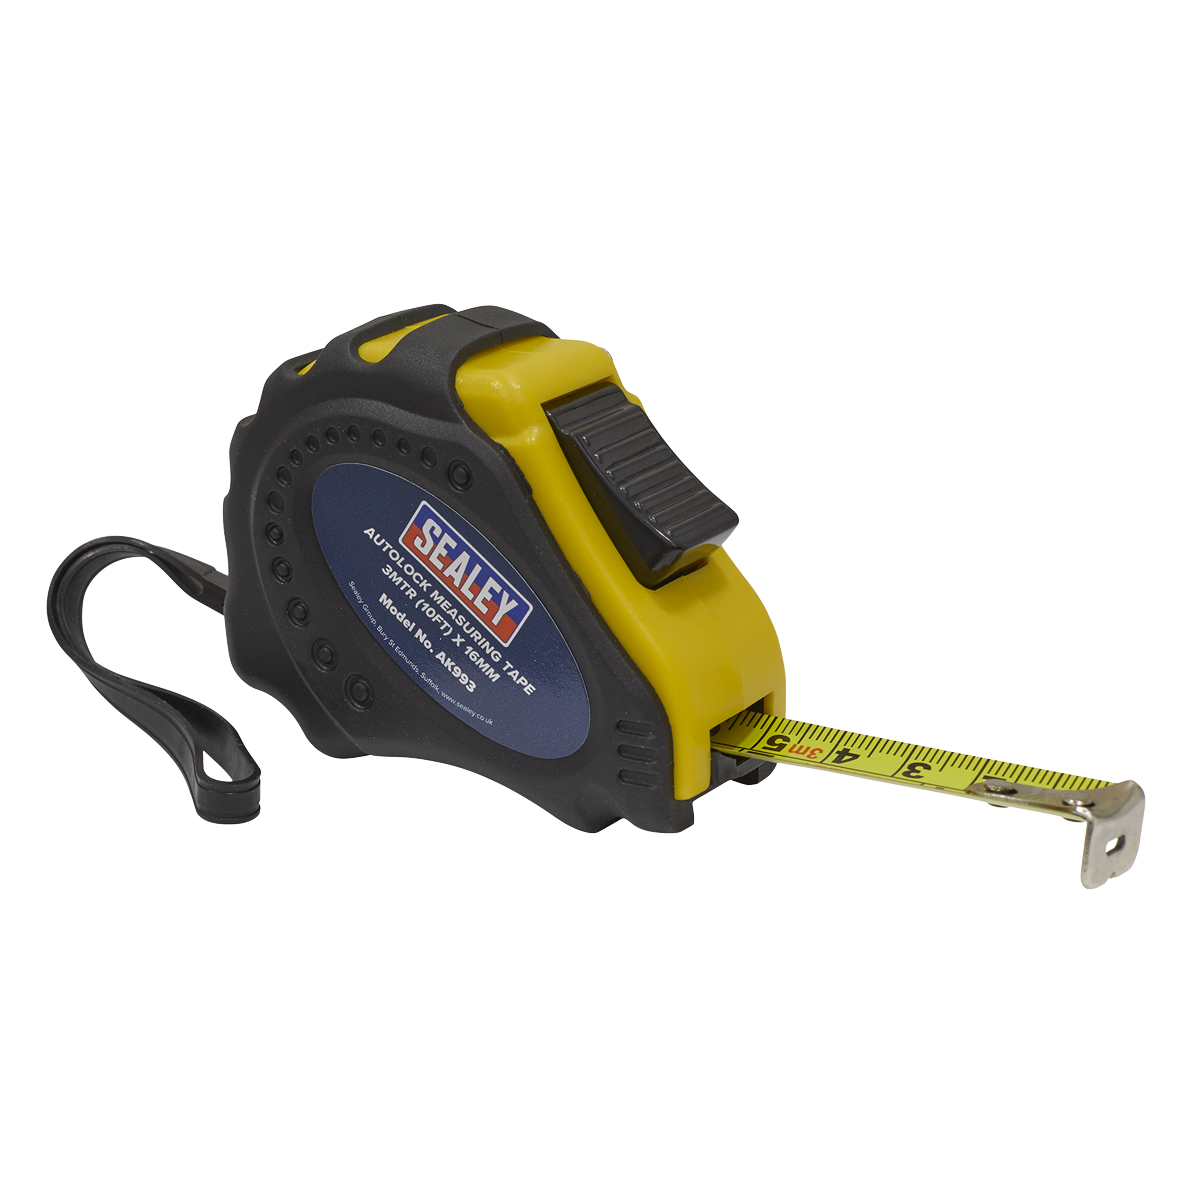 Autolock Tape Measure 3m(10ft) x 16mm - Metric/Imperial